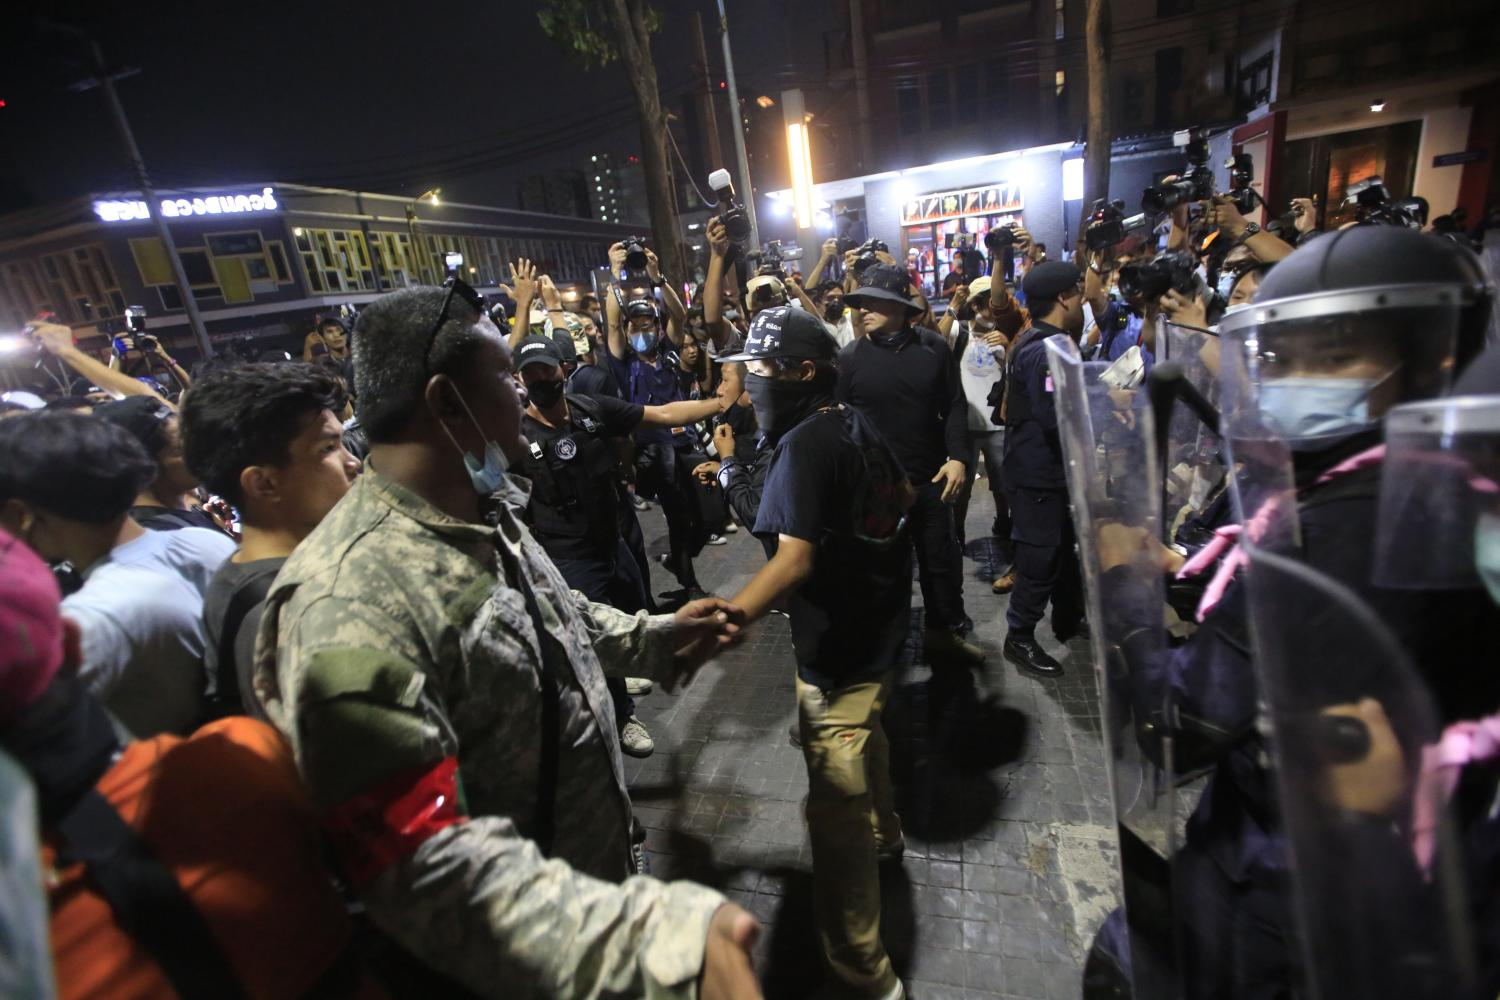 Demonstrators confront police in riot gear Wednesday night at Suan Luang Square, where they gathered to demand the release of 10 protest leaders detained at nearby Pathumwan police station.(Photo by Pornprom Satrabhaya)